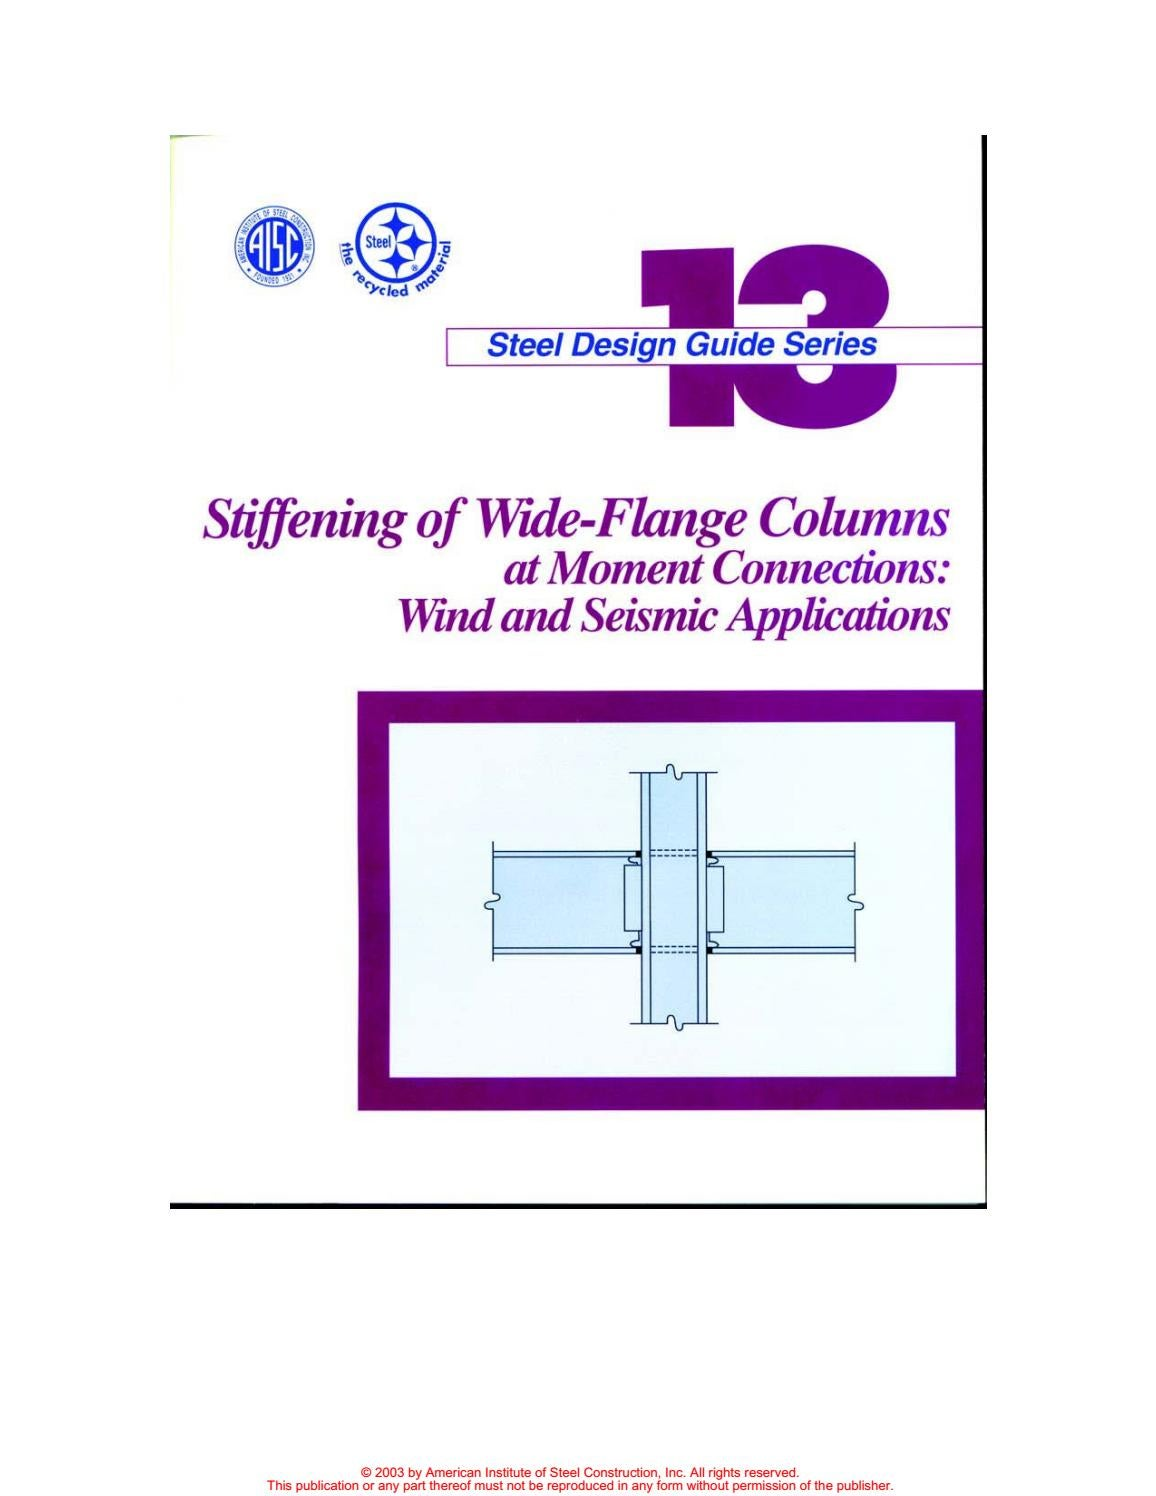 Aisc design guide 13 stiffening of wide flange column at